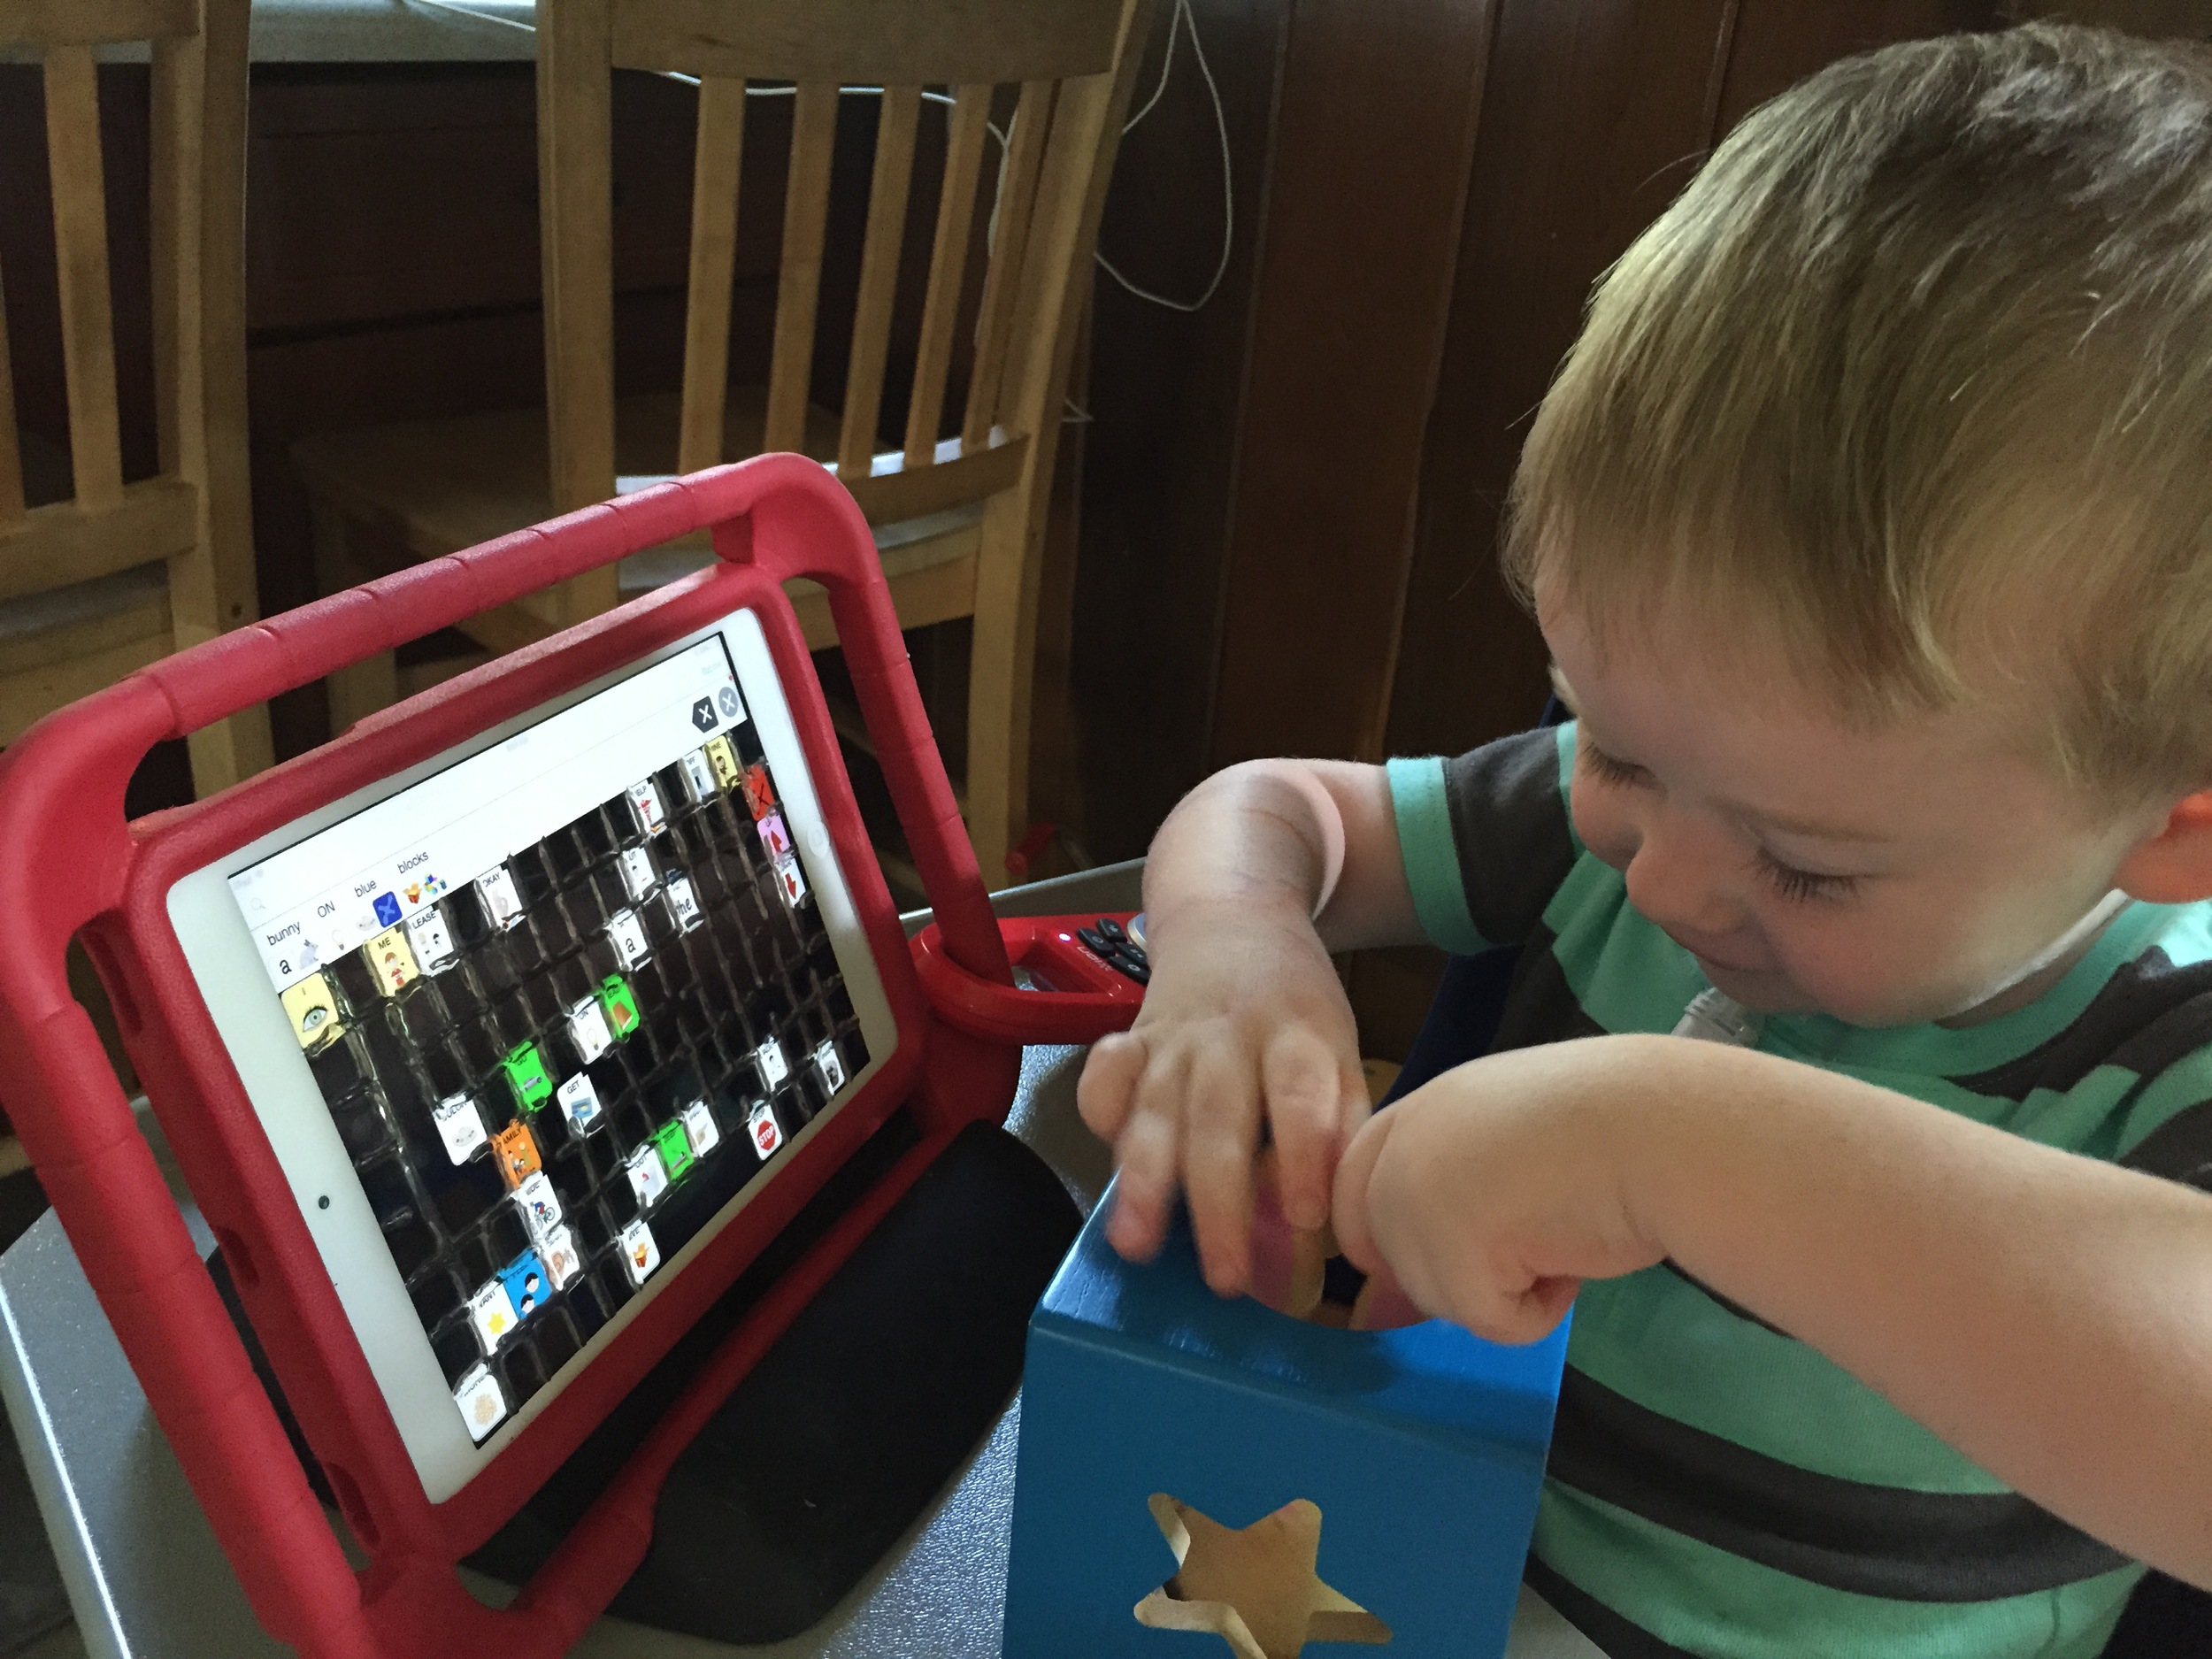 Working on prepositions ON, OFF, IN and OUT using Nathaniel's talker and the toy  Bunny Peek-a-Boo